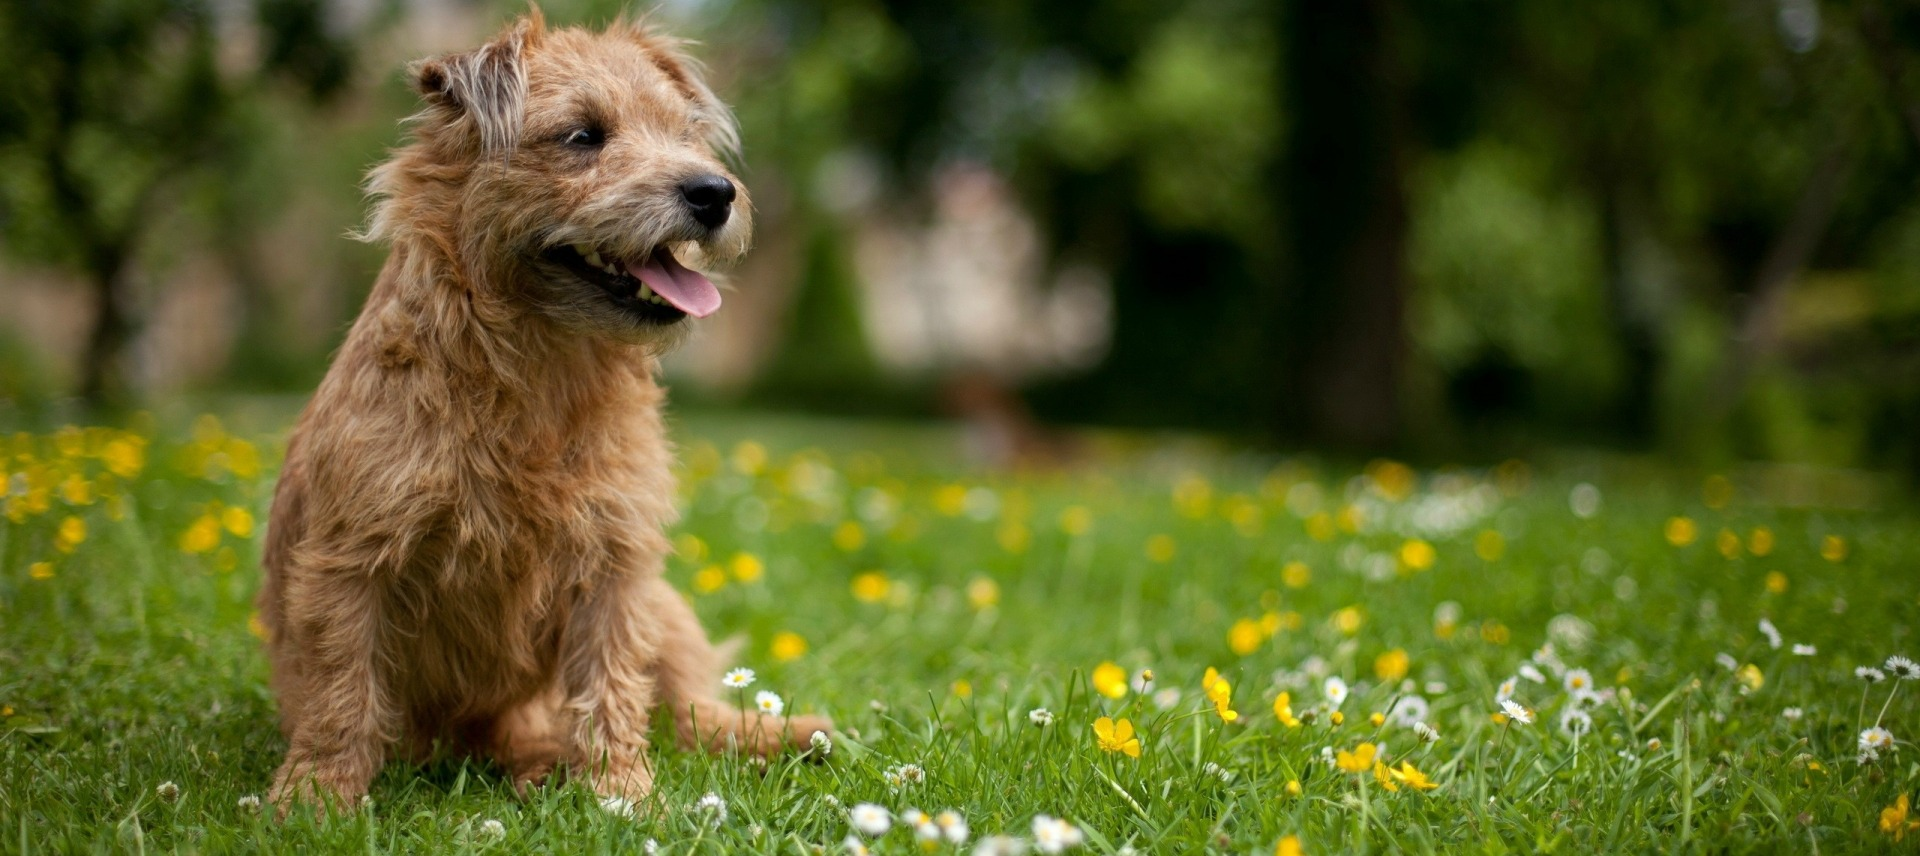 dog_in_grass_field1